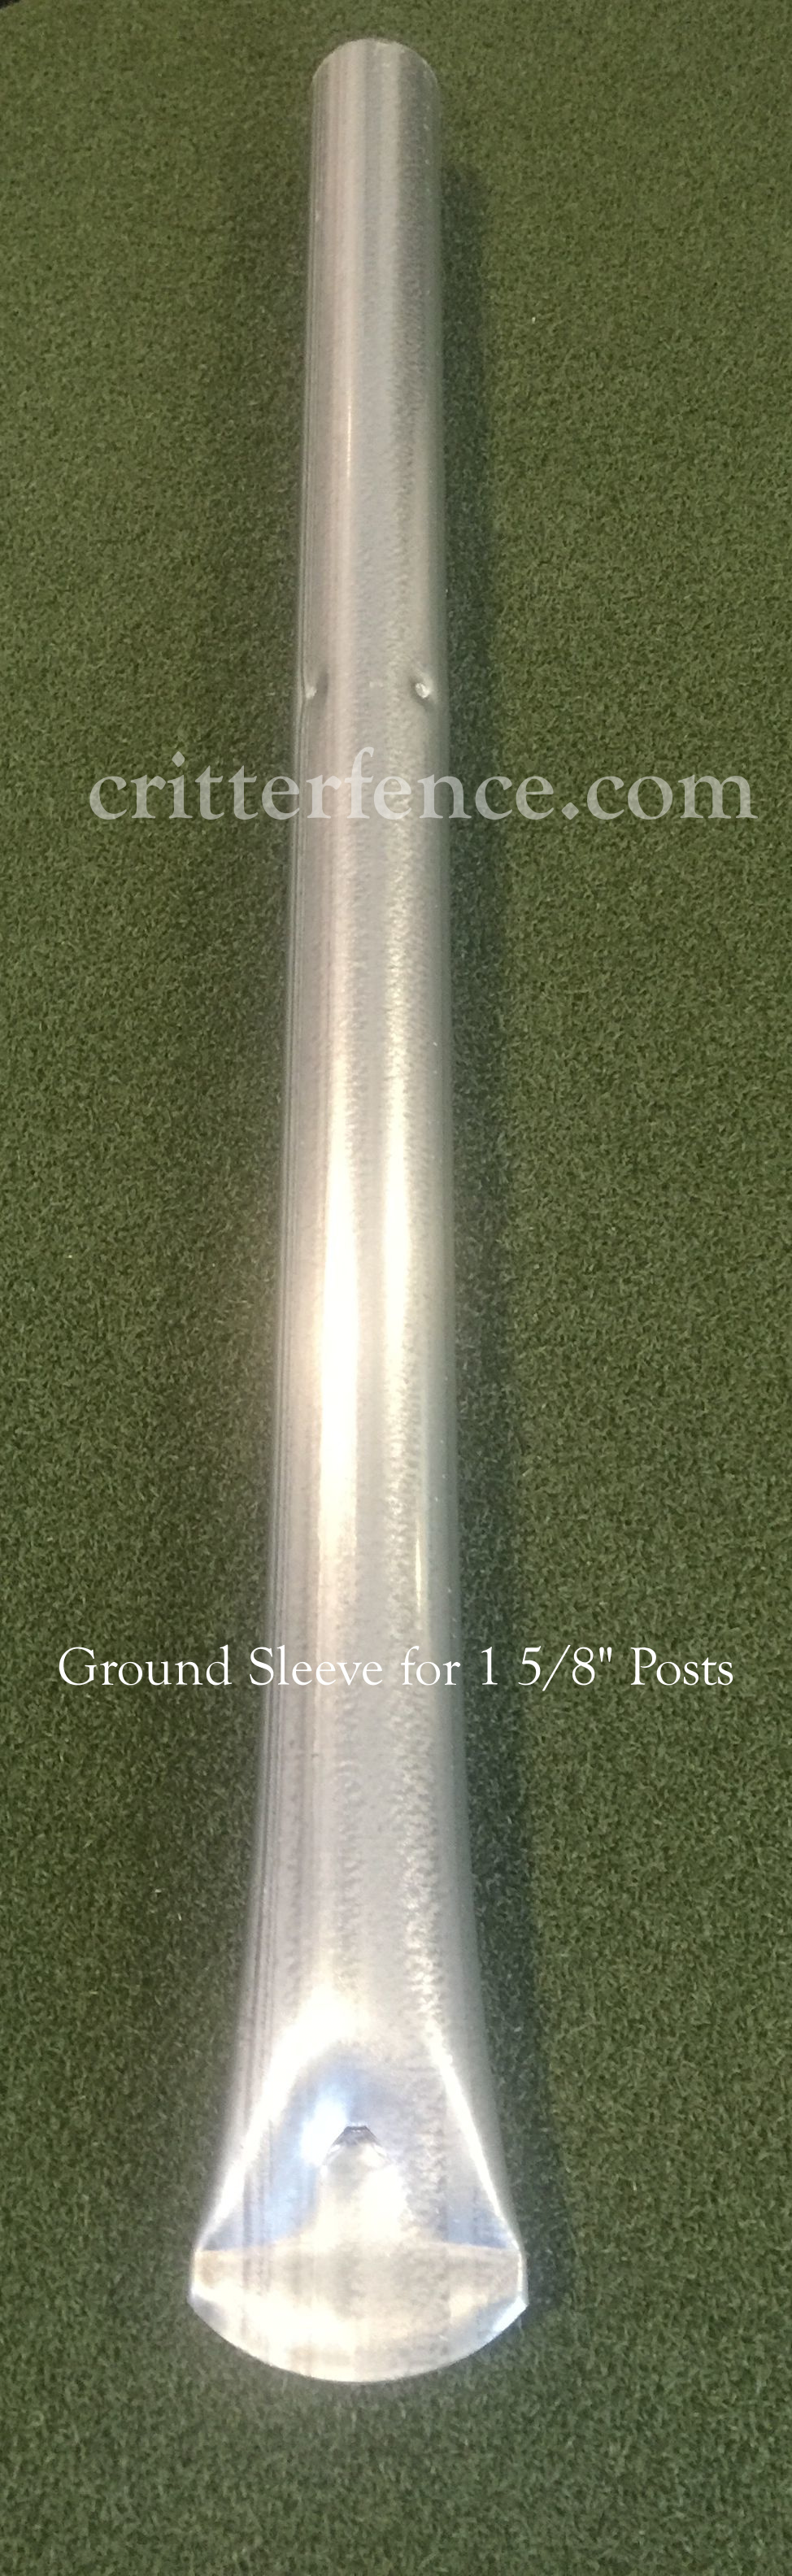 Ground sleeve for 1 5/8 round posts Ground sleeves, post ground sleeves